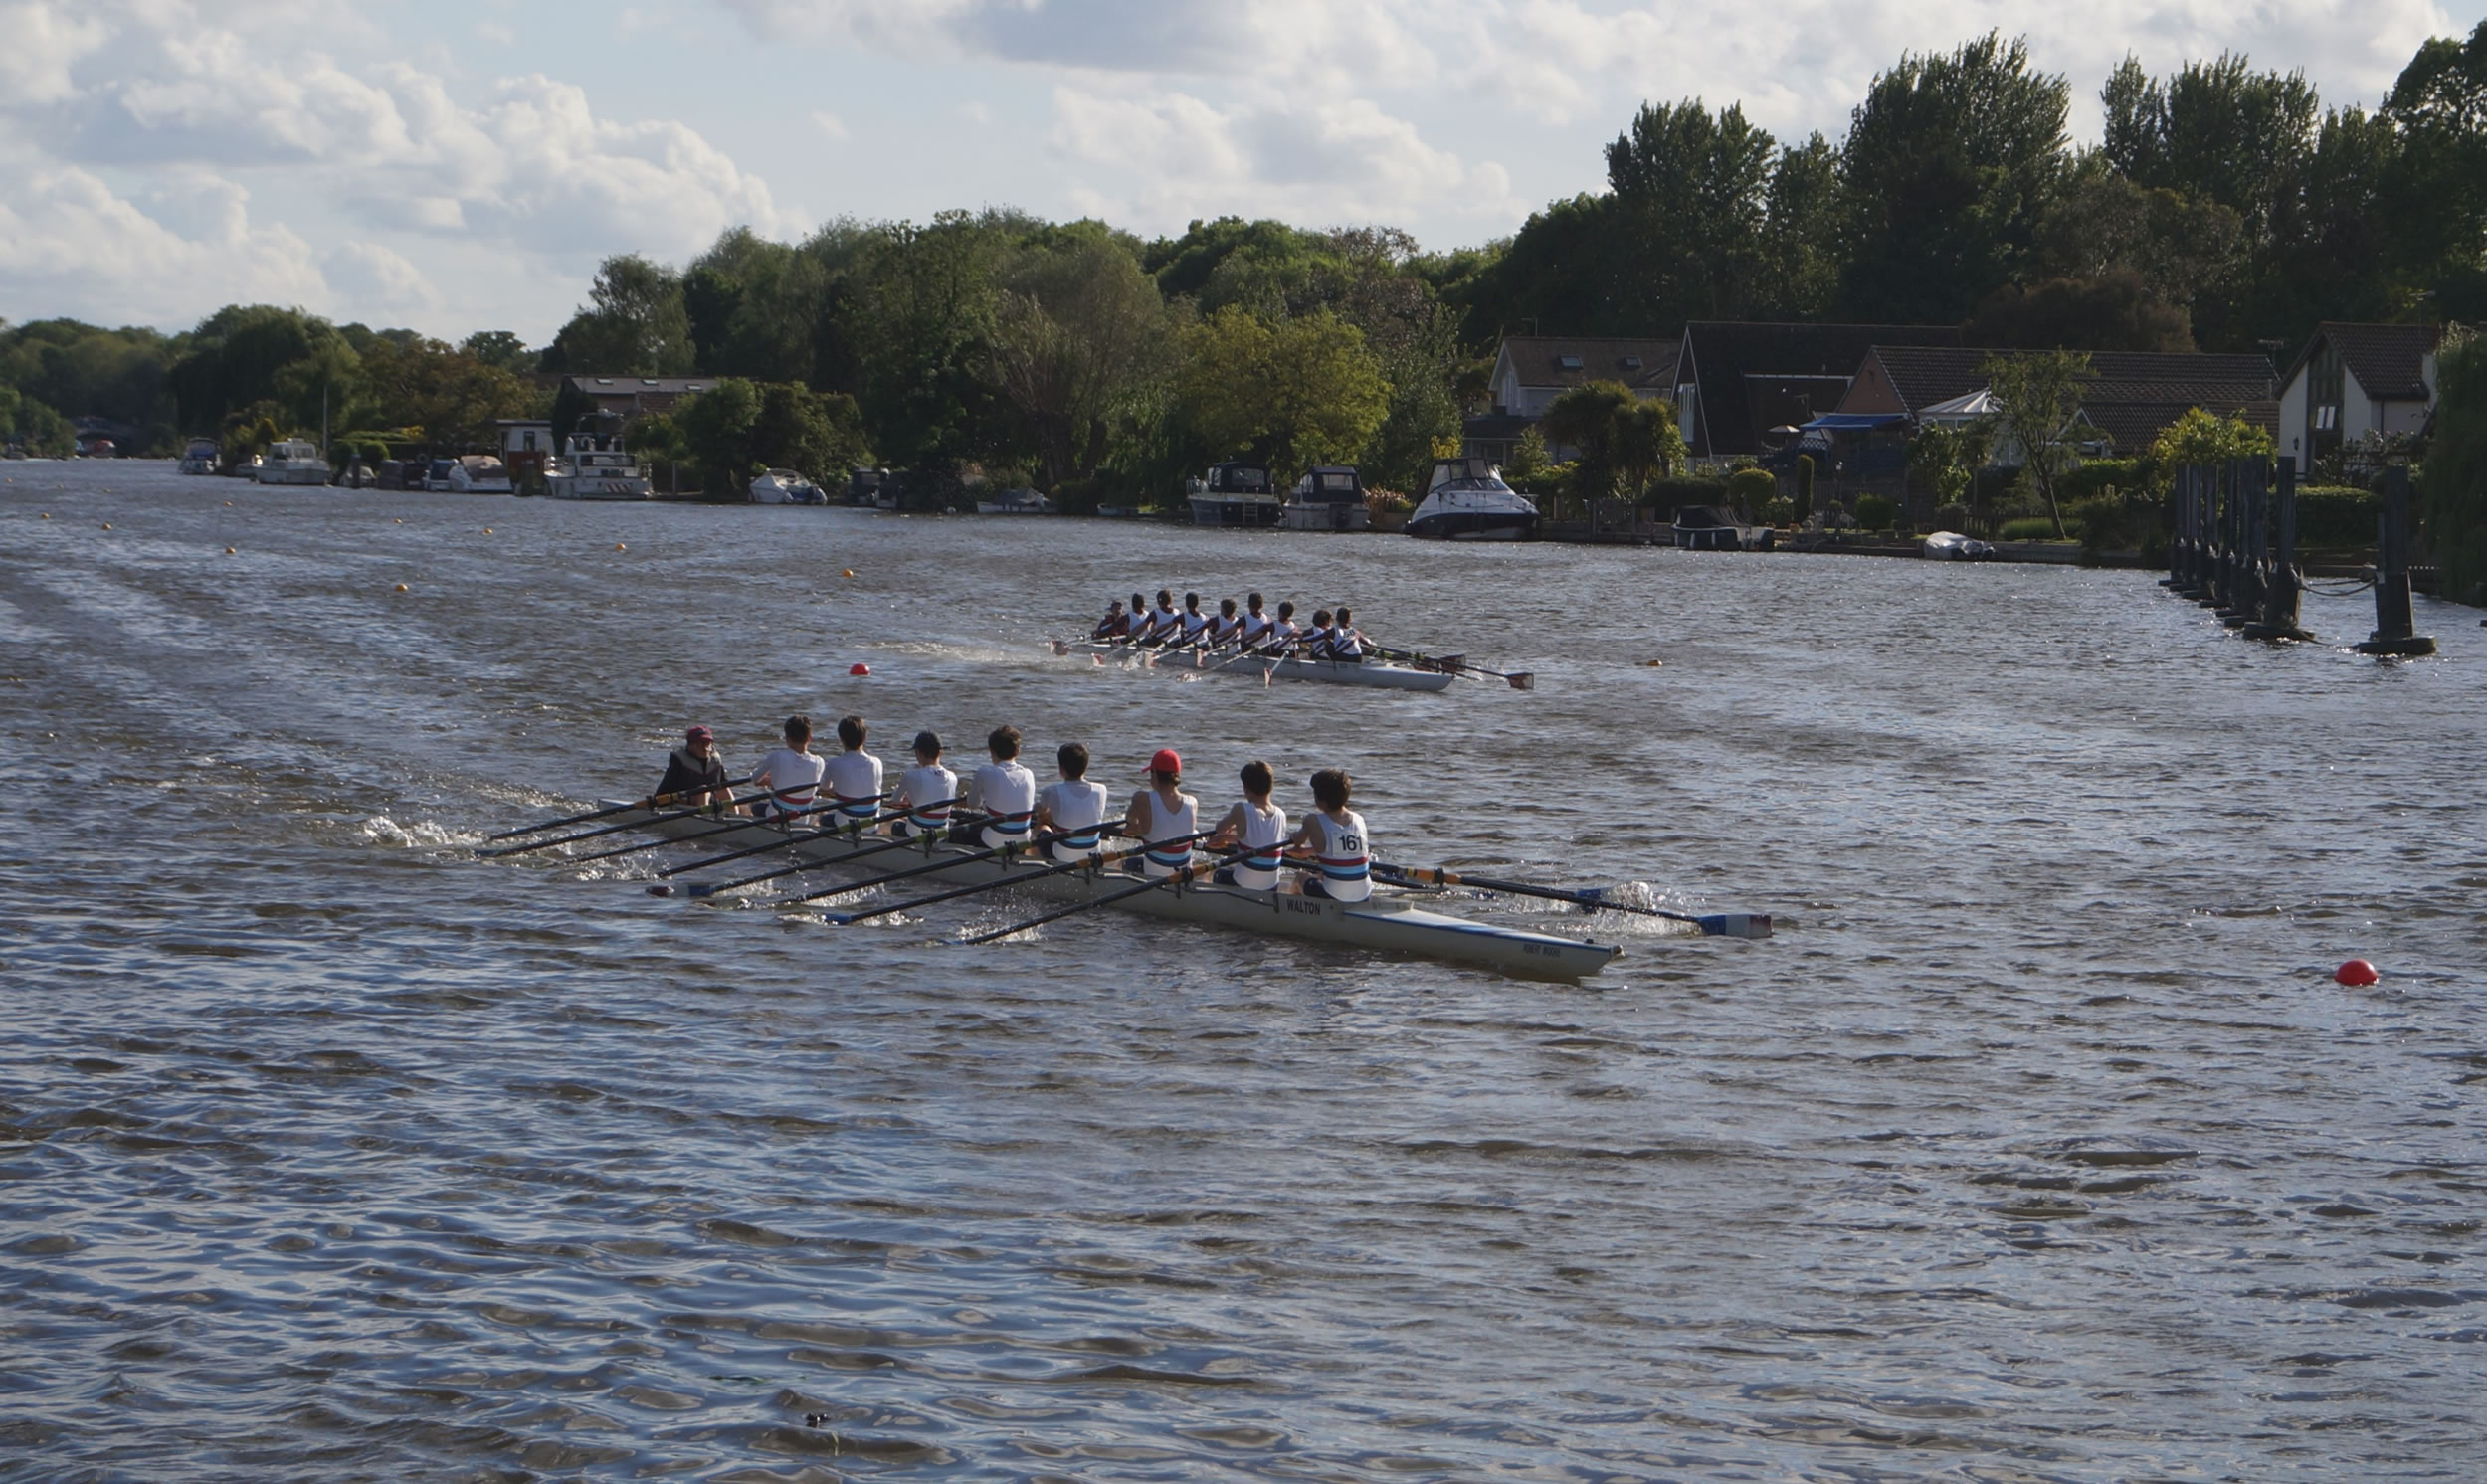 Rowing clubs from Walton, Weybridge, Molesey and St Georges College compete at the Regatta